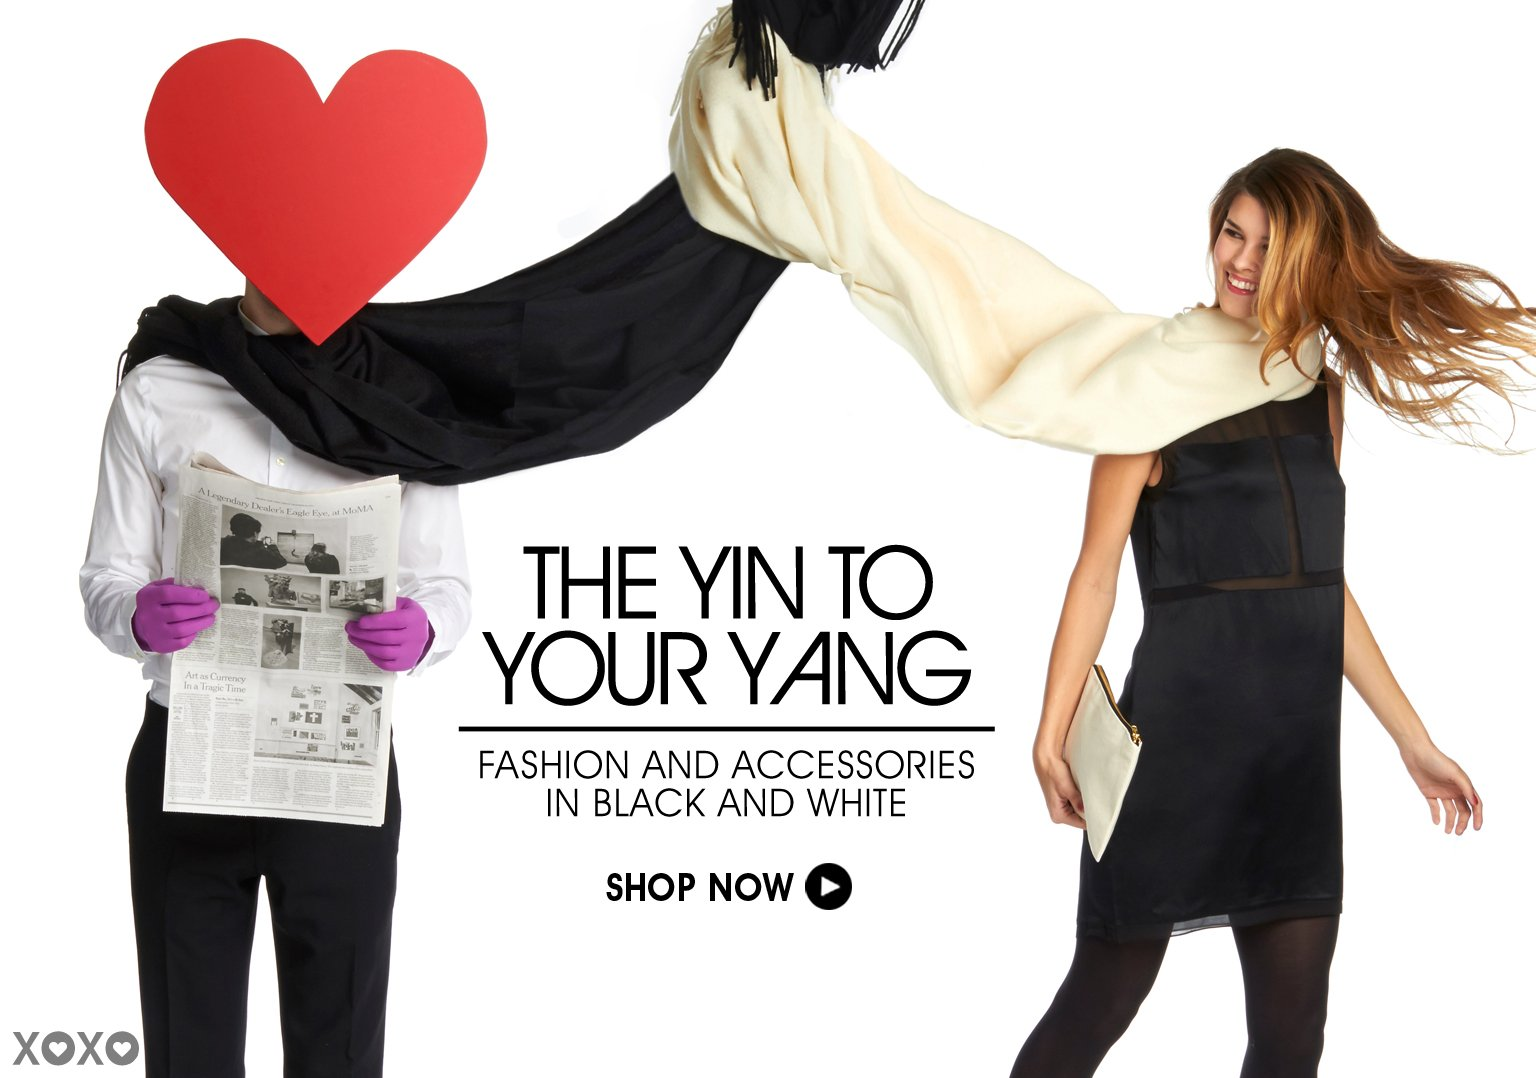 The Yin To Your Yang. Shop Fashion & Accessories in Black & White